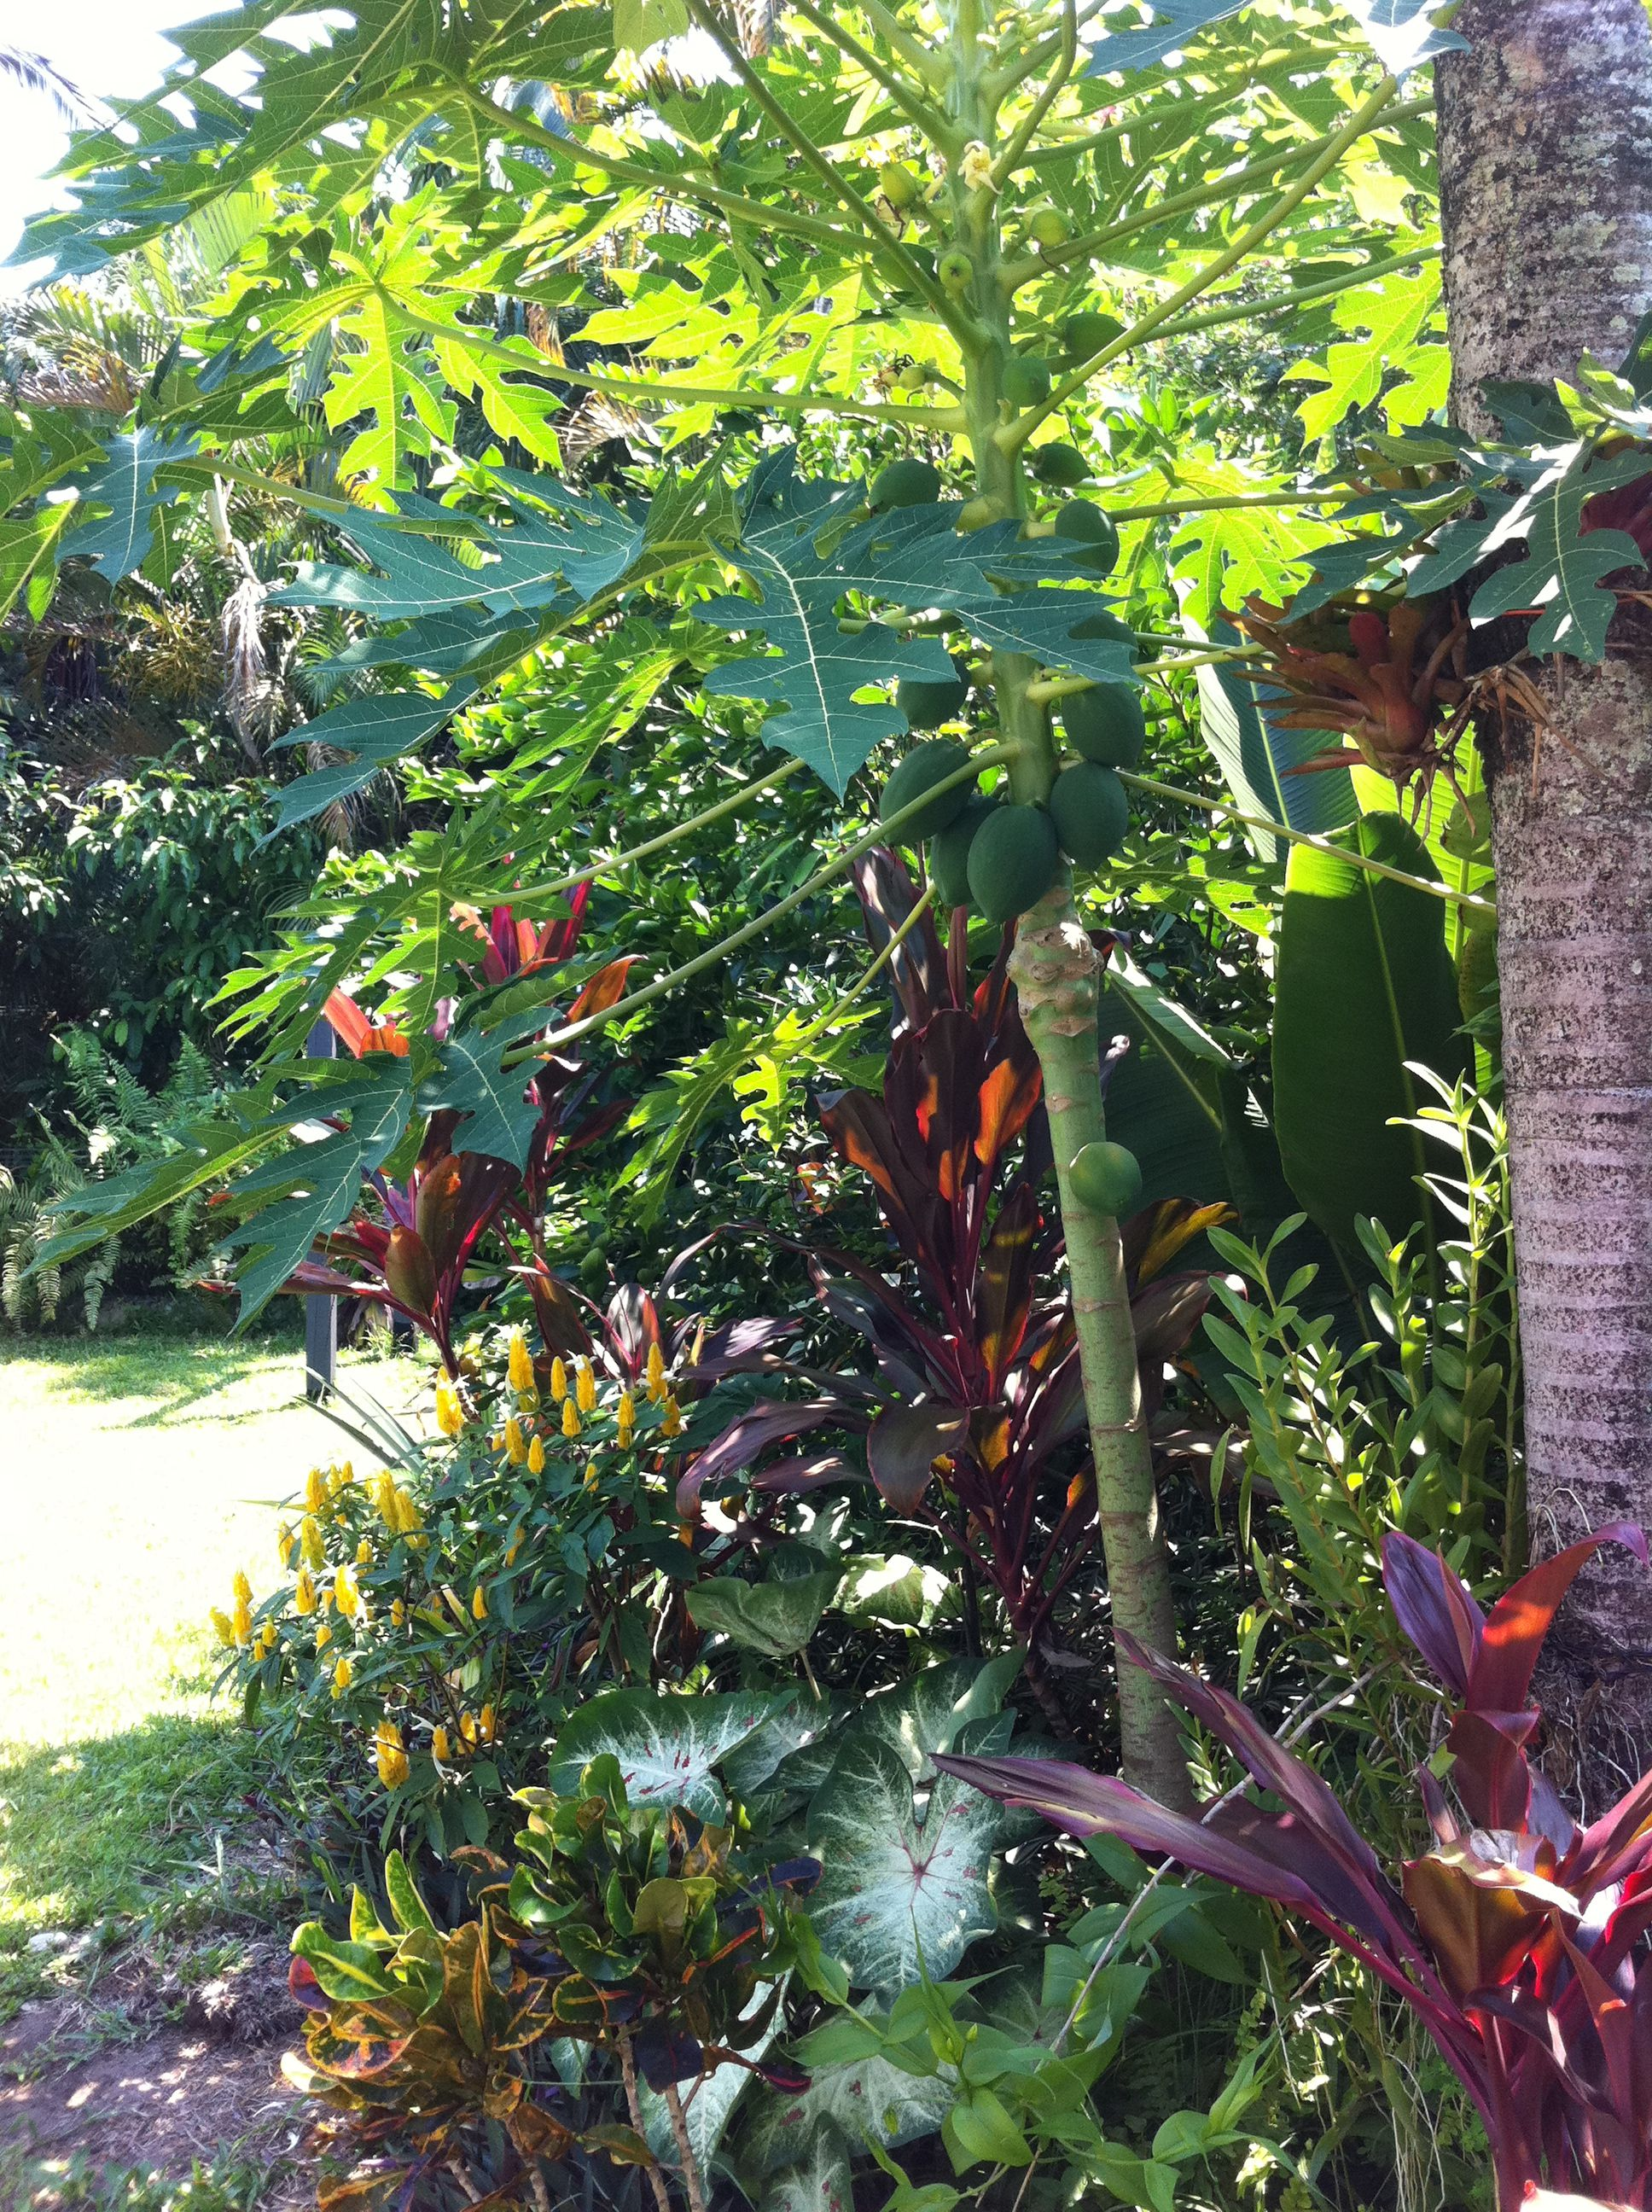 yes a tropical garden is a heaven even if there is no design